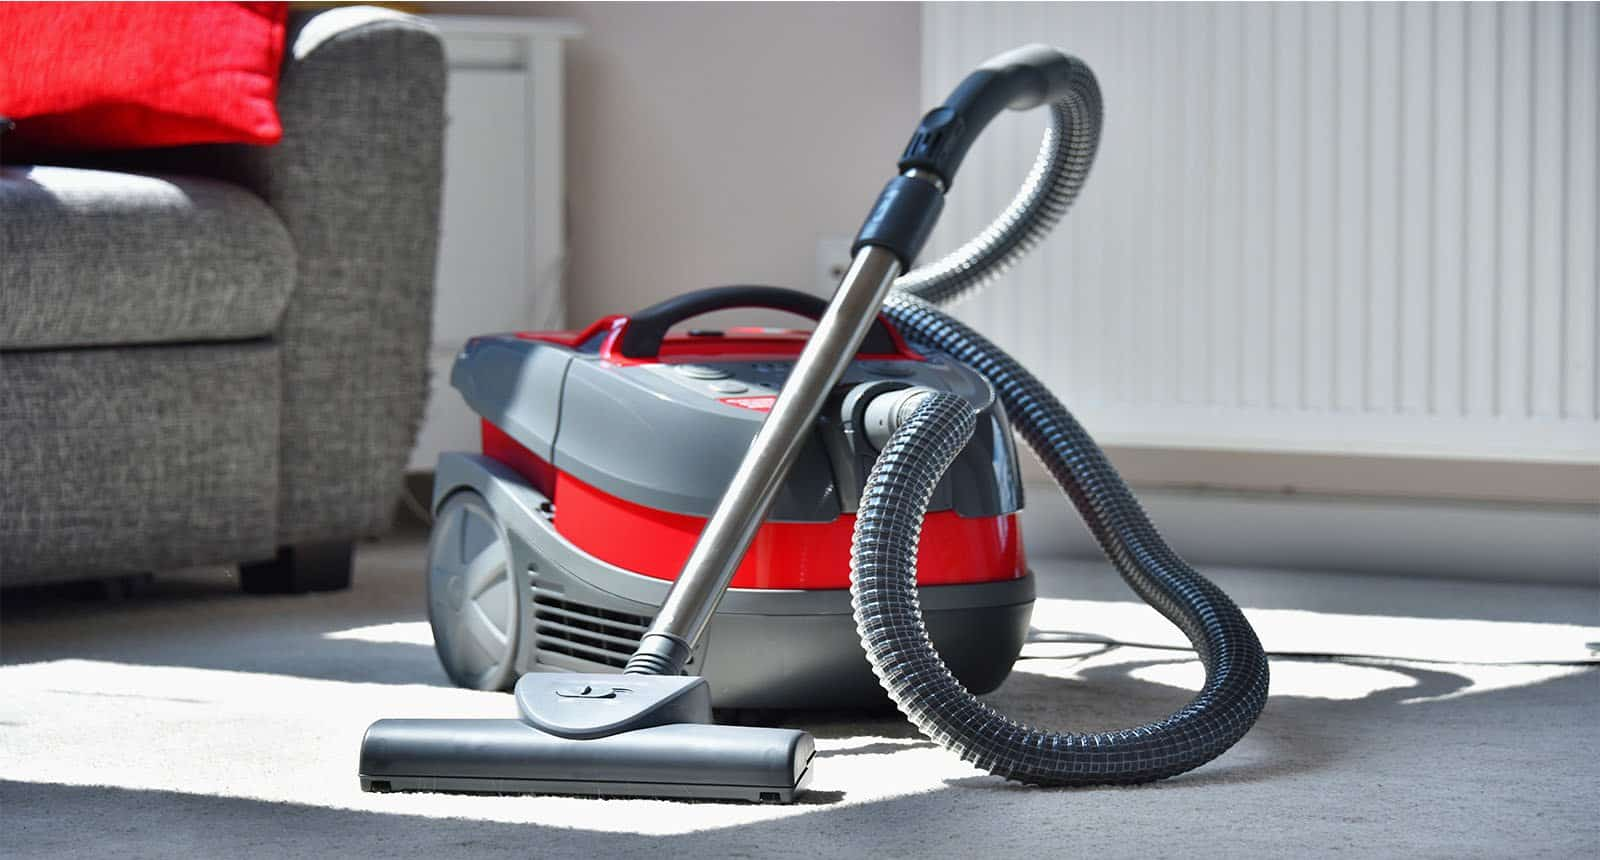 Canister Vacuum Cleaner Home